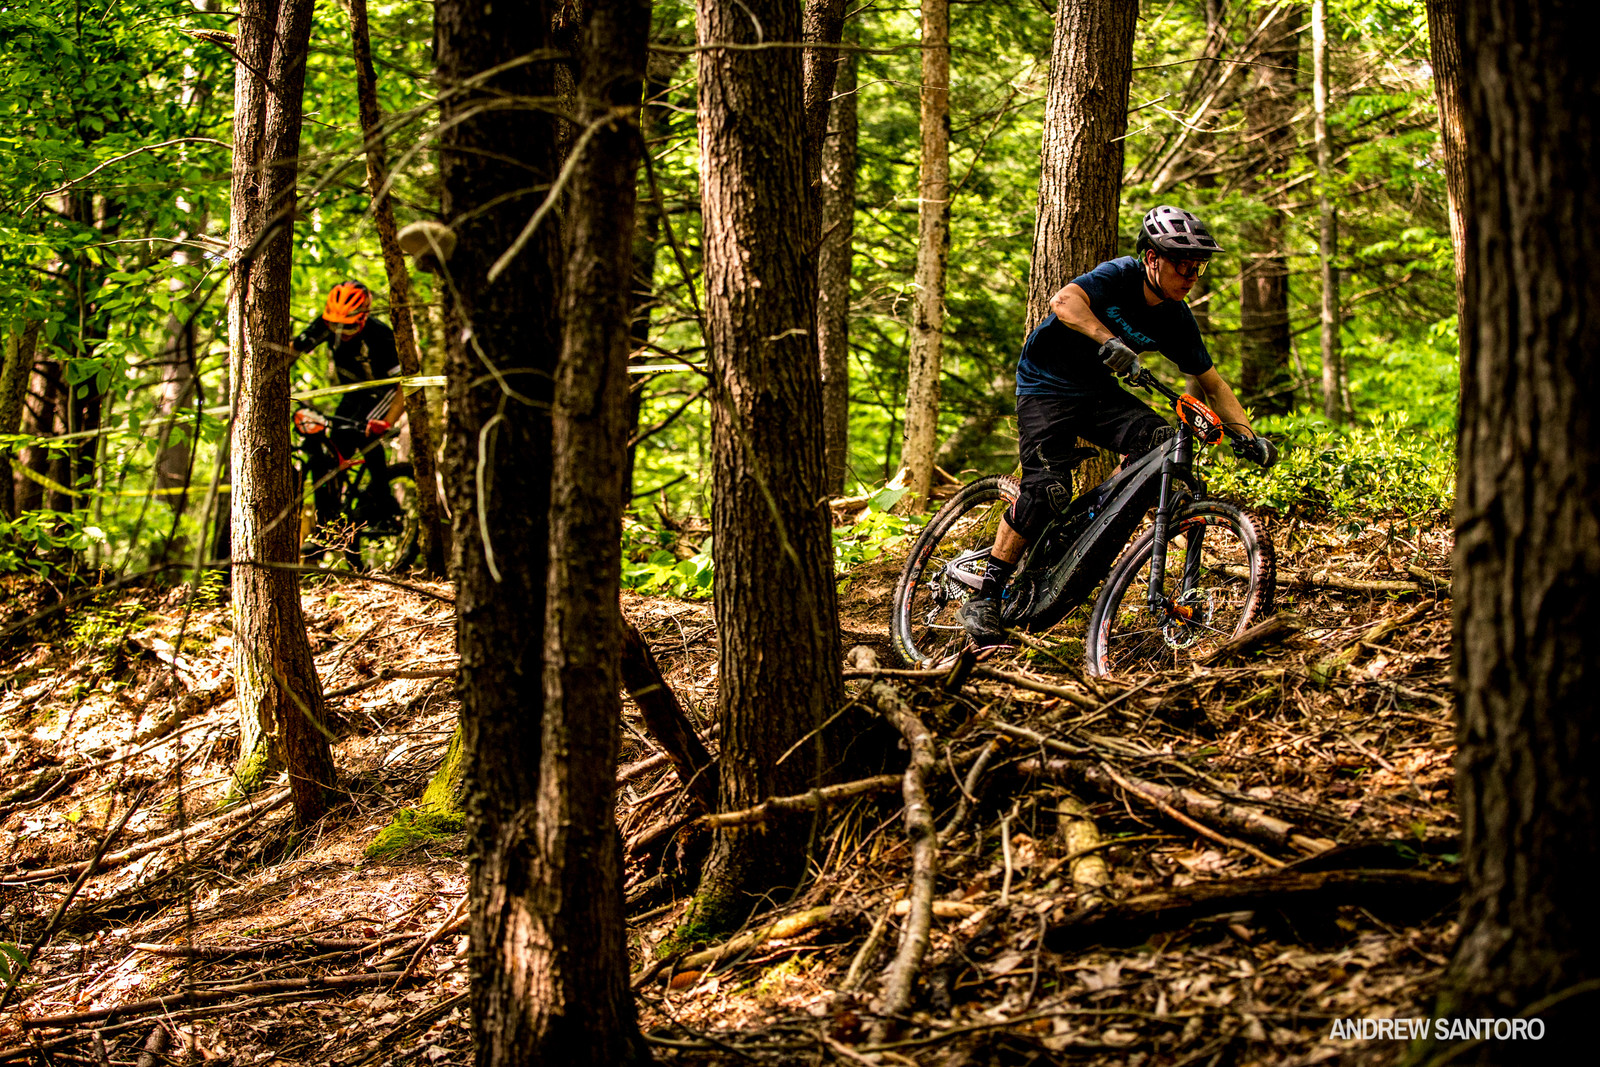 Racers battled it out elbow to elbow on the climbs but after 24 minutes of flat out racing at the Warfield Trails, Nathan Sterckx came out on top and plenty of stories were exchanged with smiles all around at the finish line.